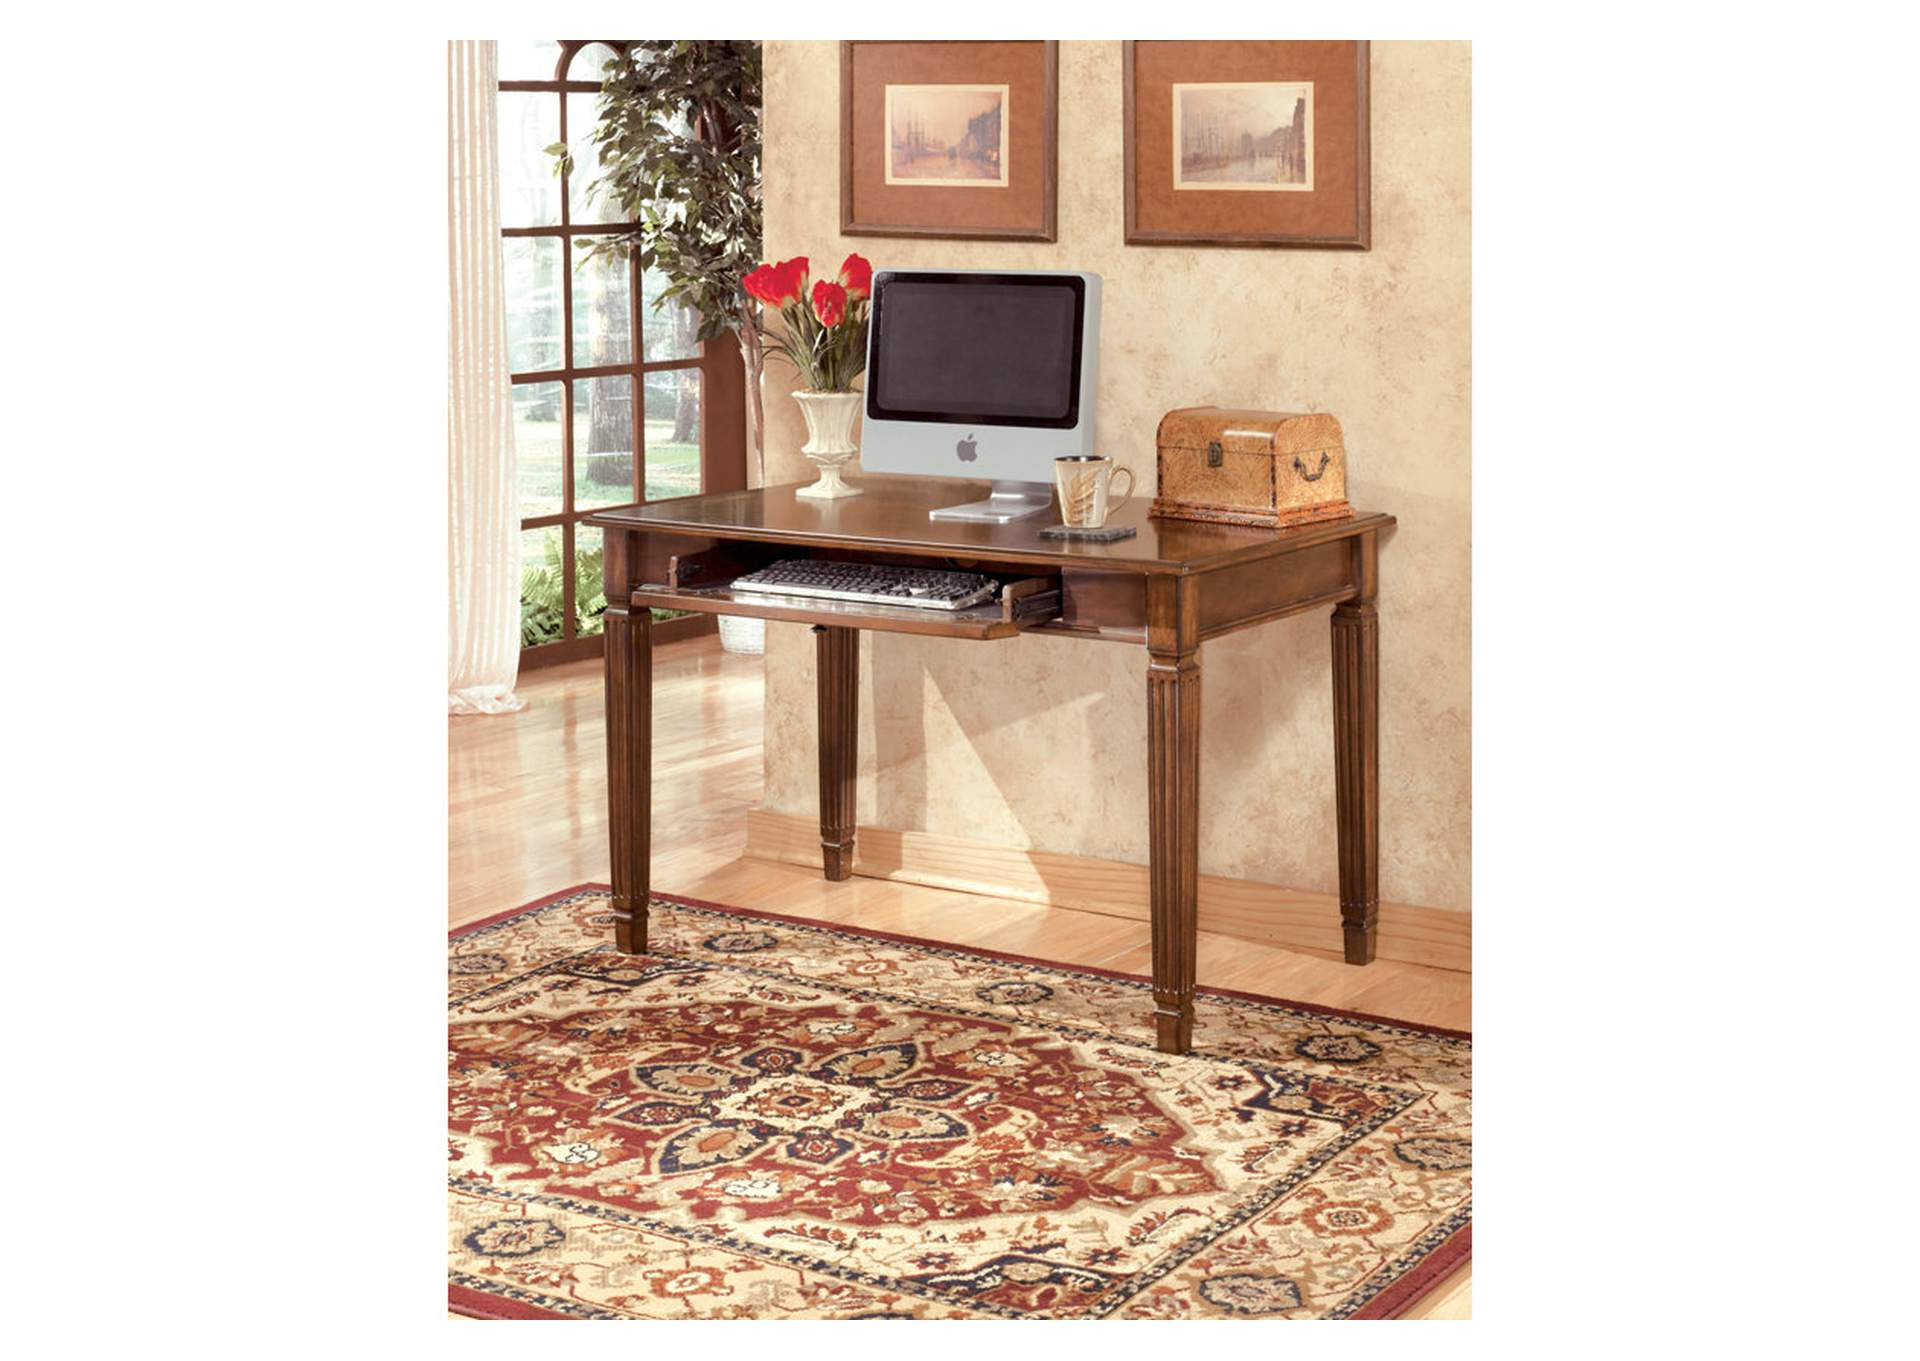 Hamlyn Small Leg Desk,ABF Signature Design by Ashley